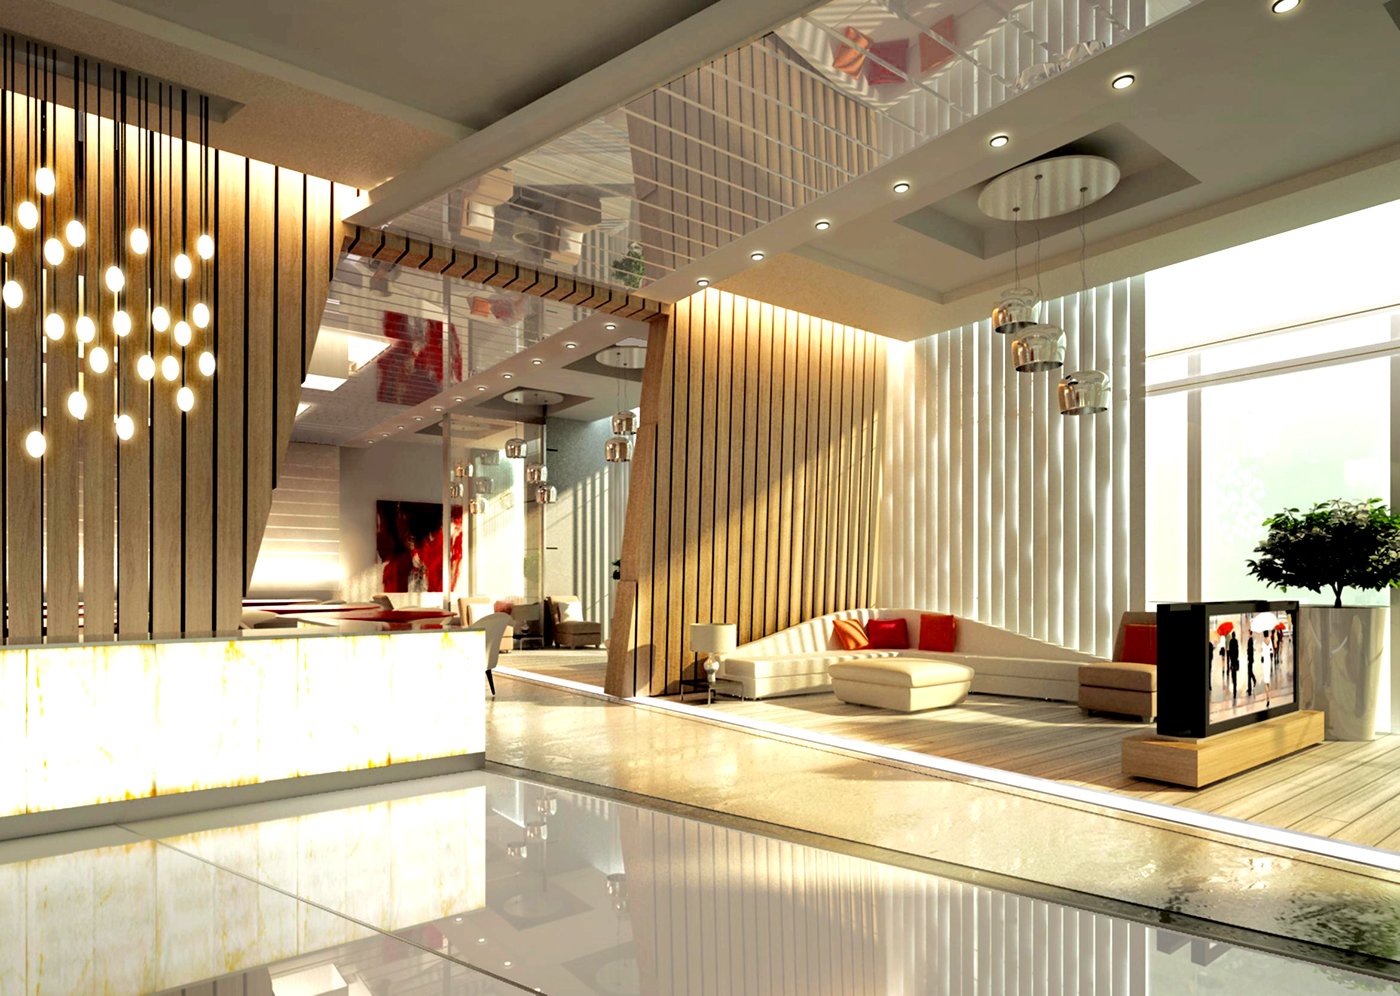 Alyal hotel lobby design on behance for The designers hotel